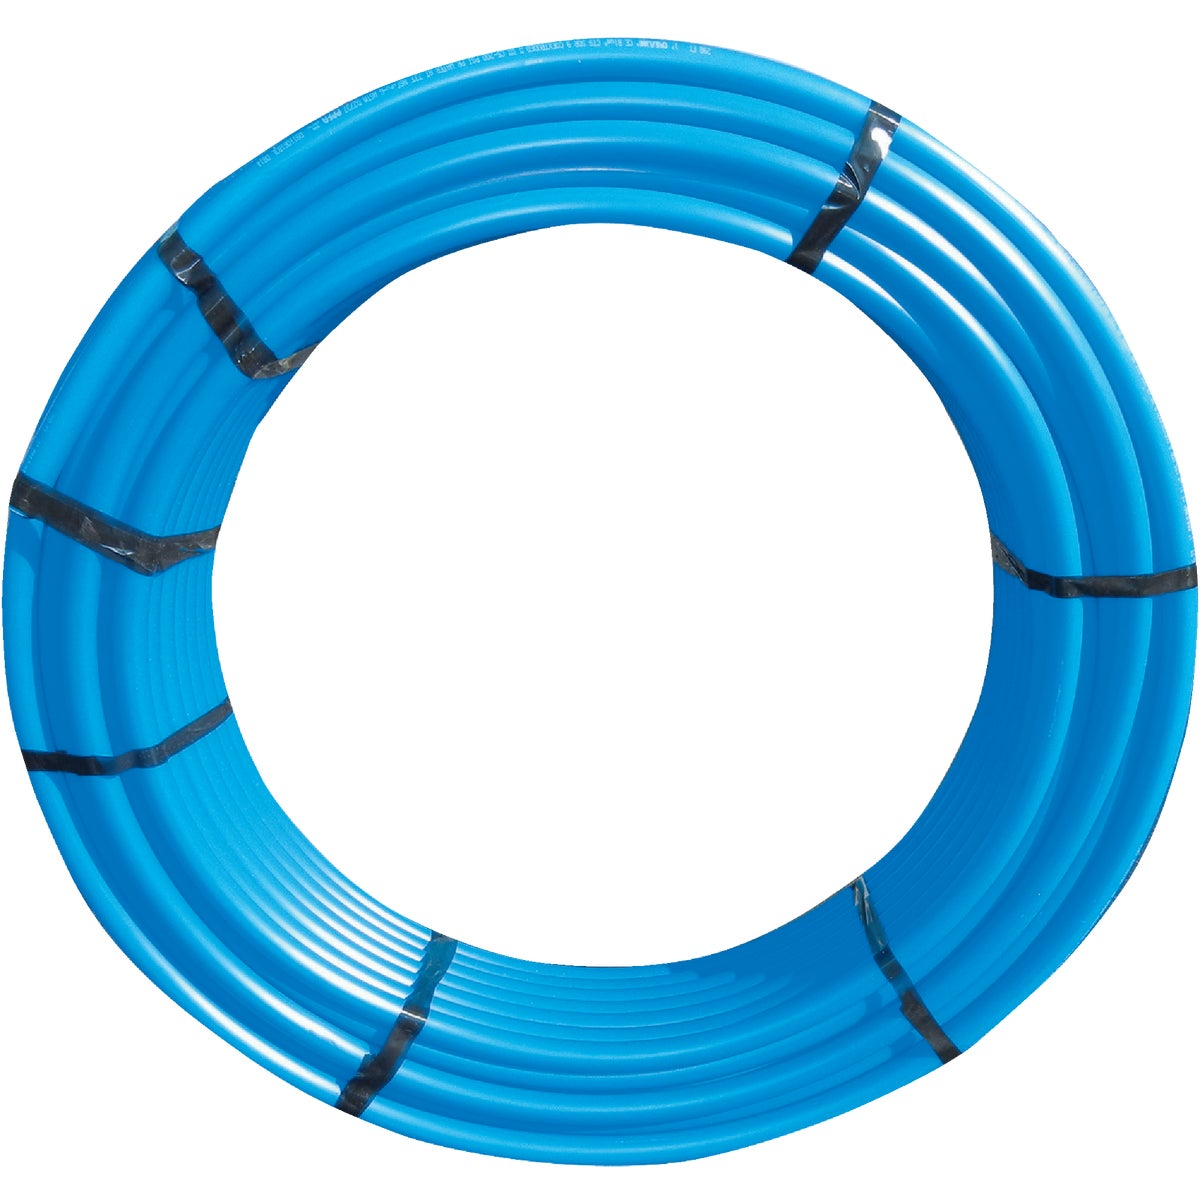 3/4X500 BLU FLX PIPE CTS - 19720 by Cresline Plastic Co